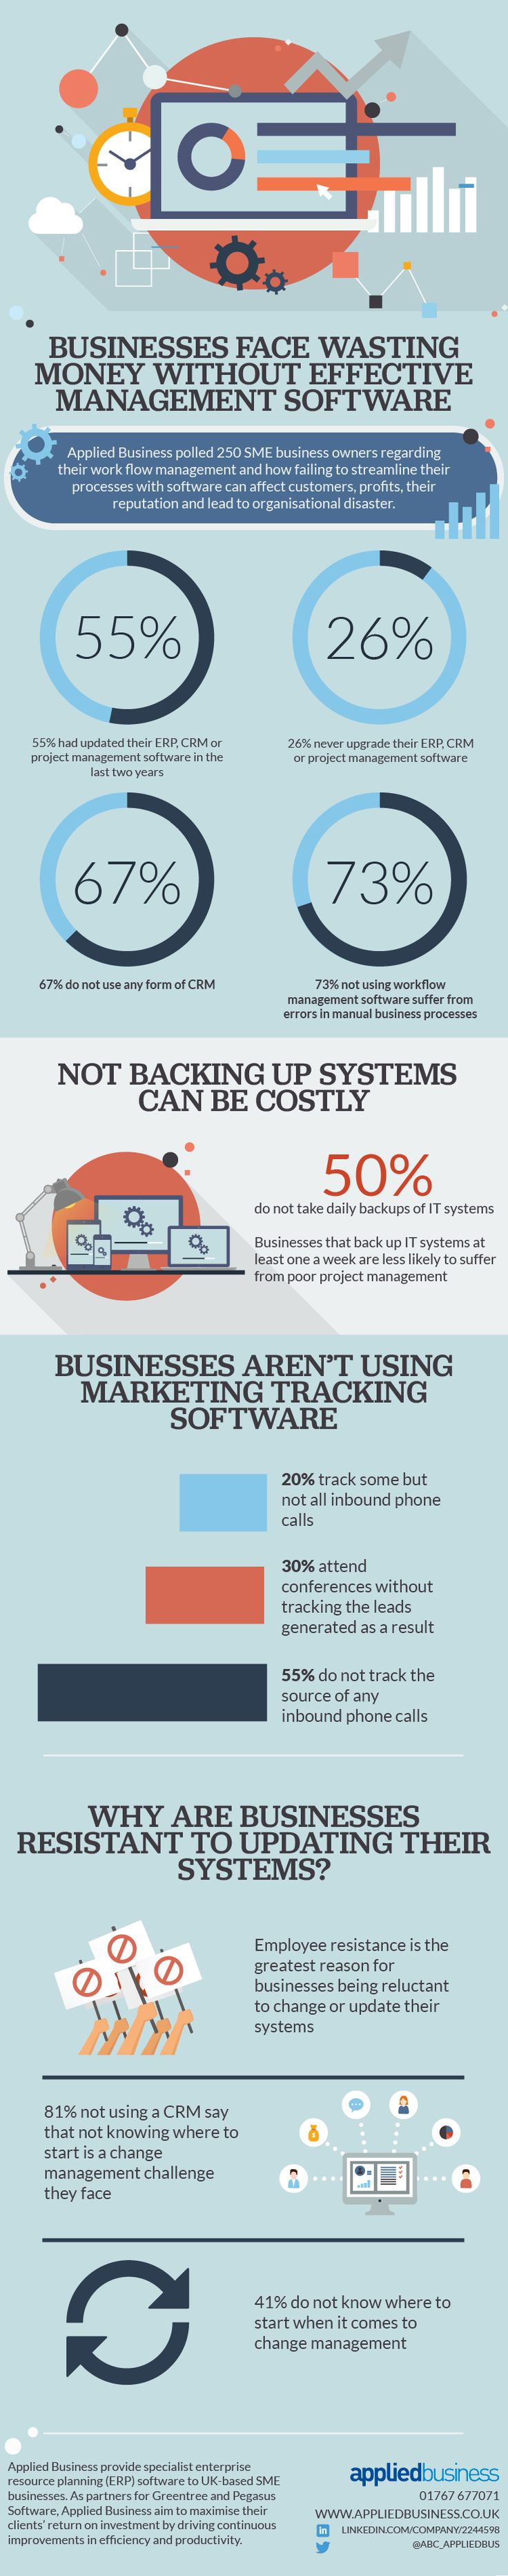 In order to become and remain successful, businesses must continually strive to improve their processes. Failure to do so will likely result in higher costs, unmotivated employees, dissatisfied customers and ultimately, lower revenues. Despite this, a recent survey by Applied Business, makers of Pegasus Software, found 73% of small and medium-sized enterprises (SMEs) that do not use workflow management software face errors in manual processes.